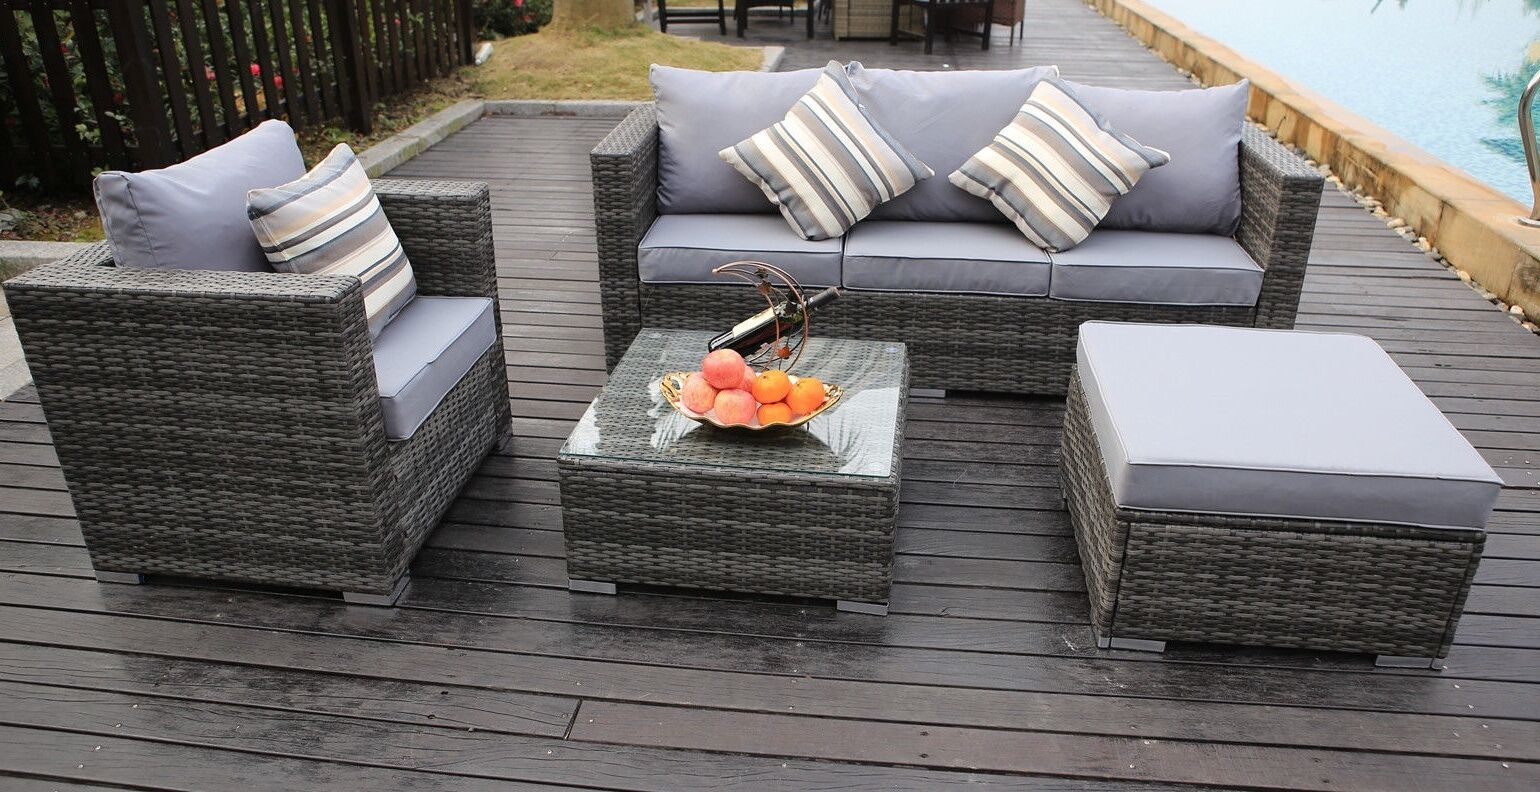 new rattan garden furniture sofa table chairs grey patio. Black Bedroom Furniture Sets. Home Design Ideas